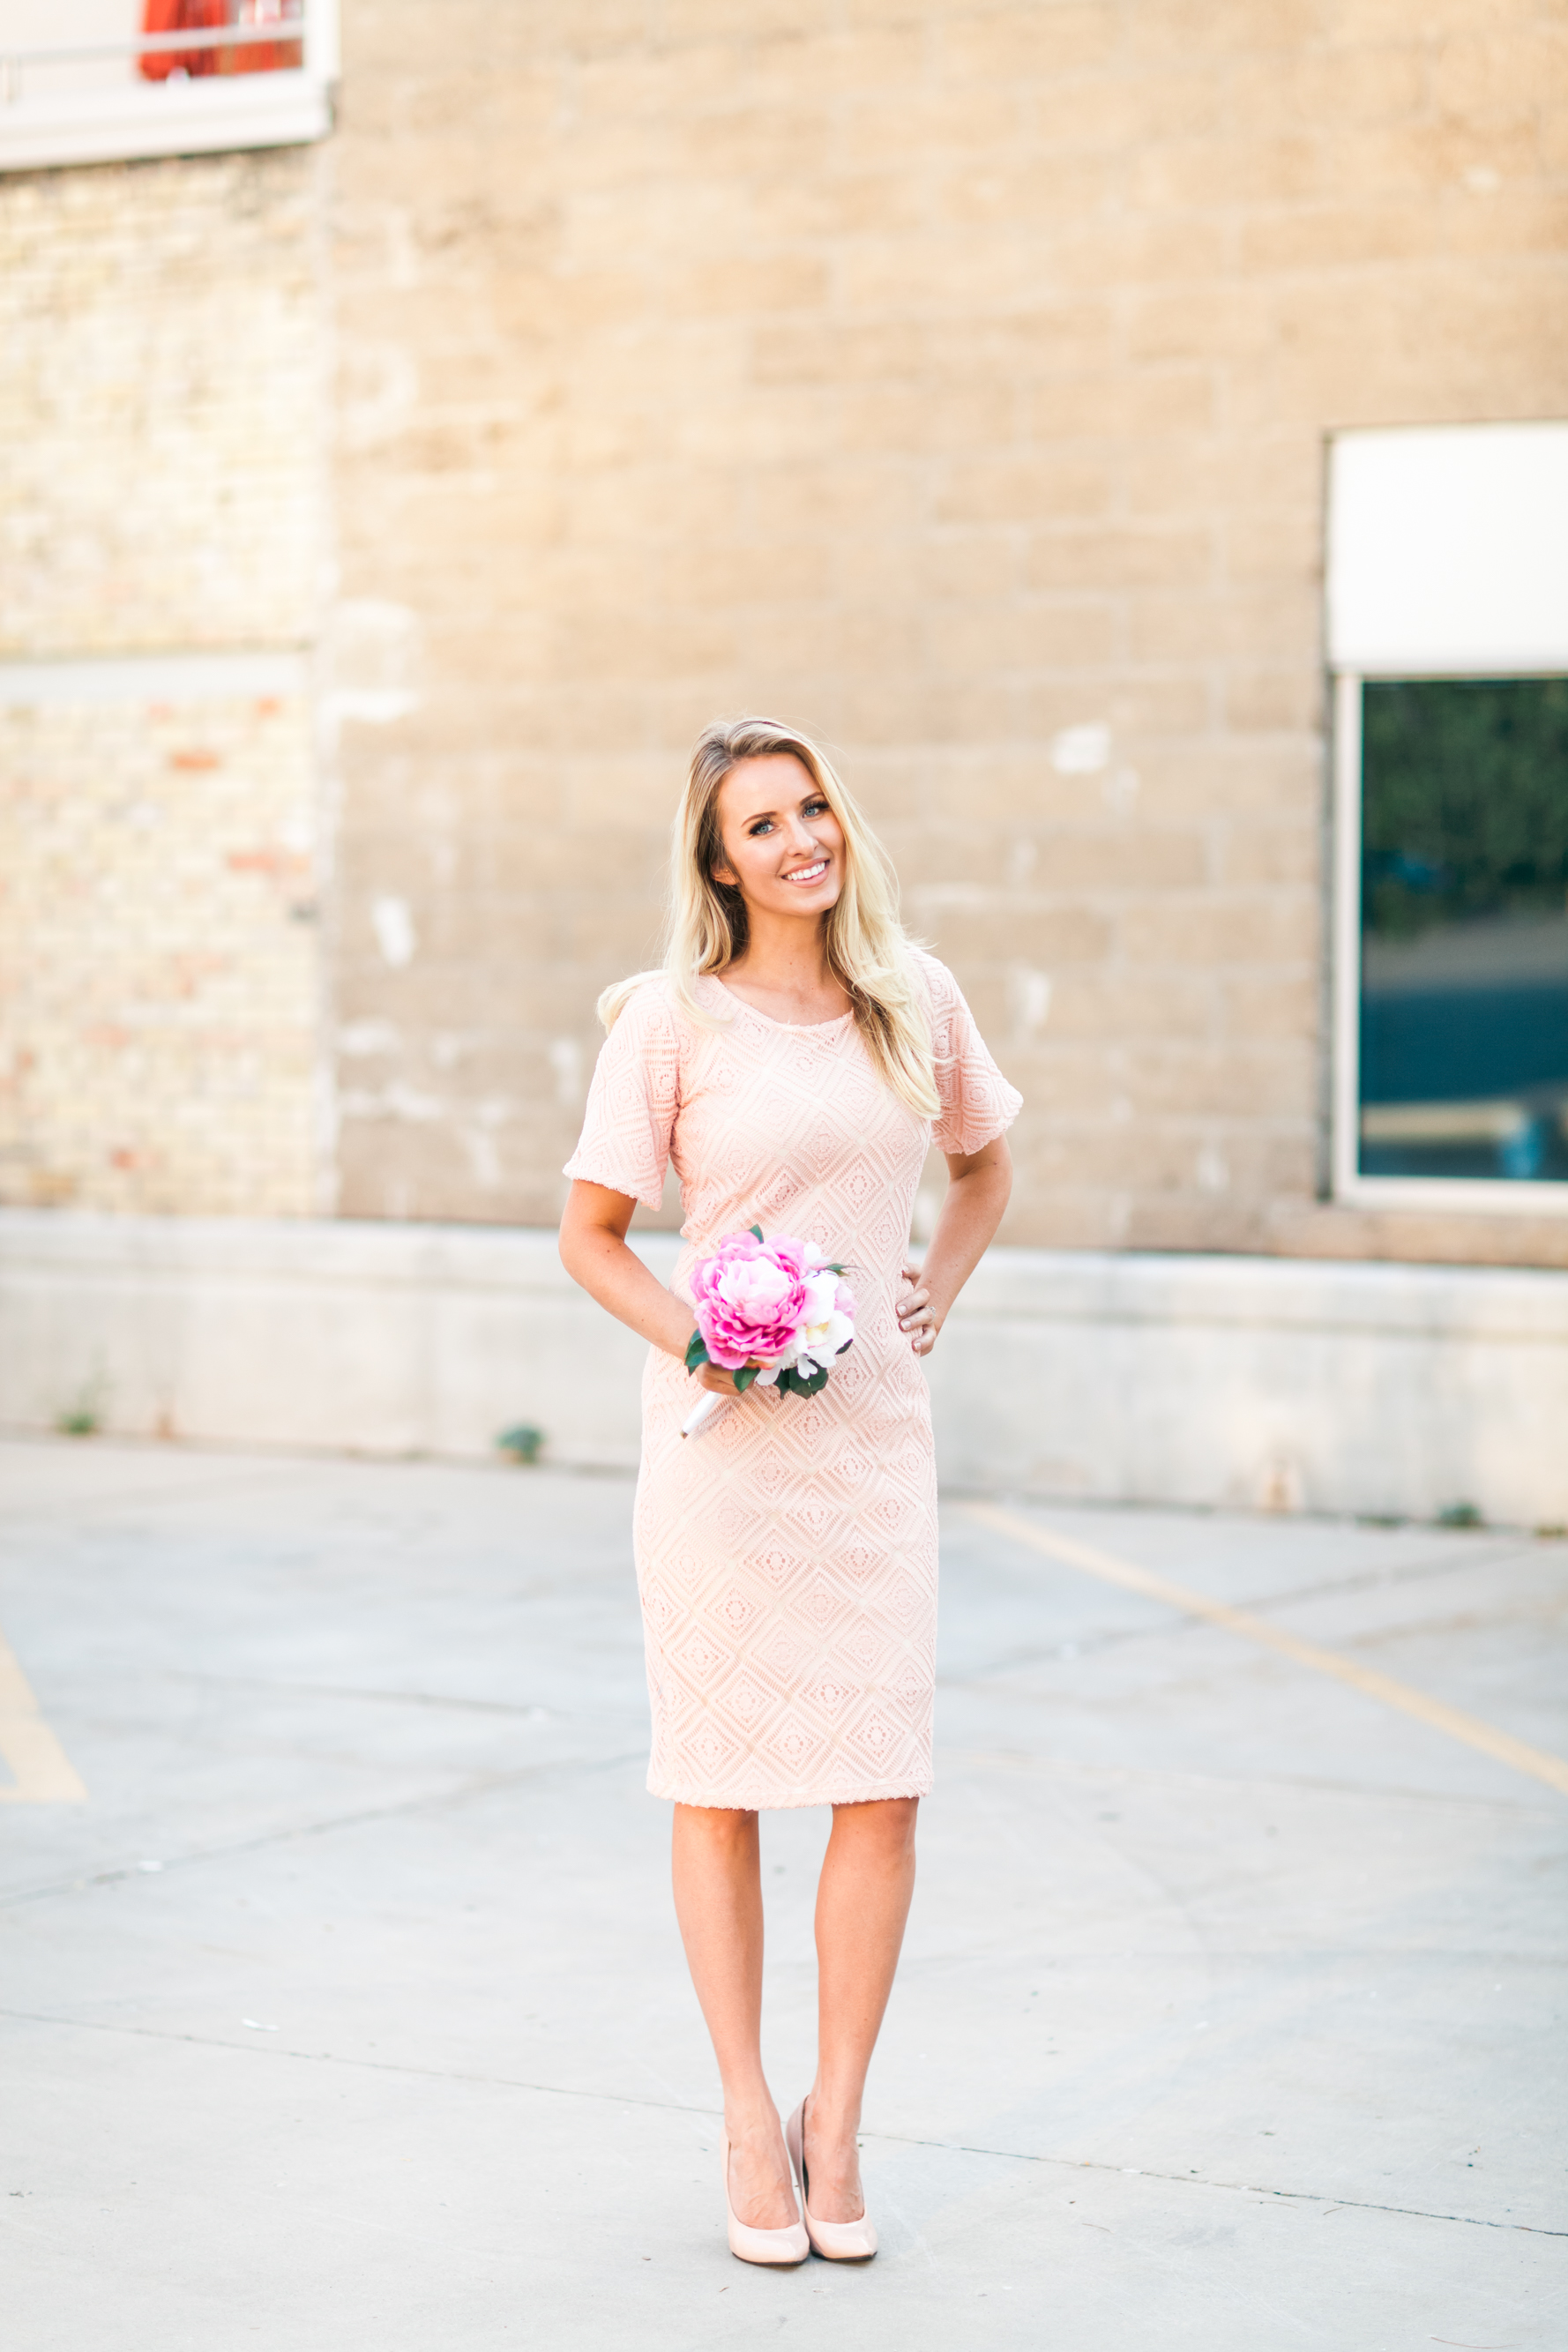 Modest bridesmaid dress ideas.  Love it!